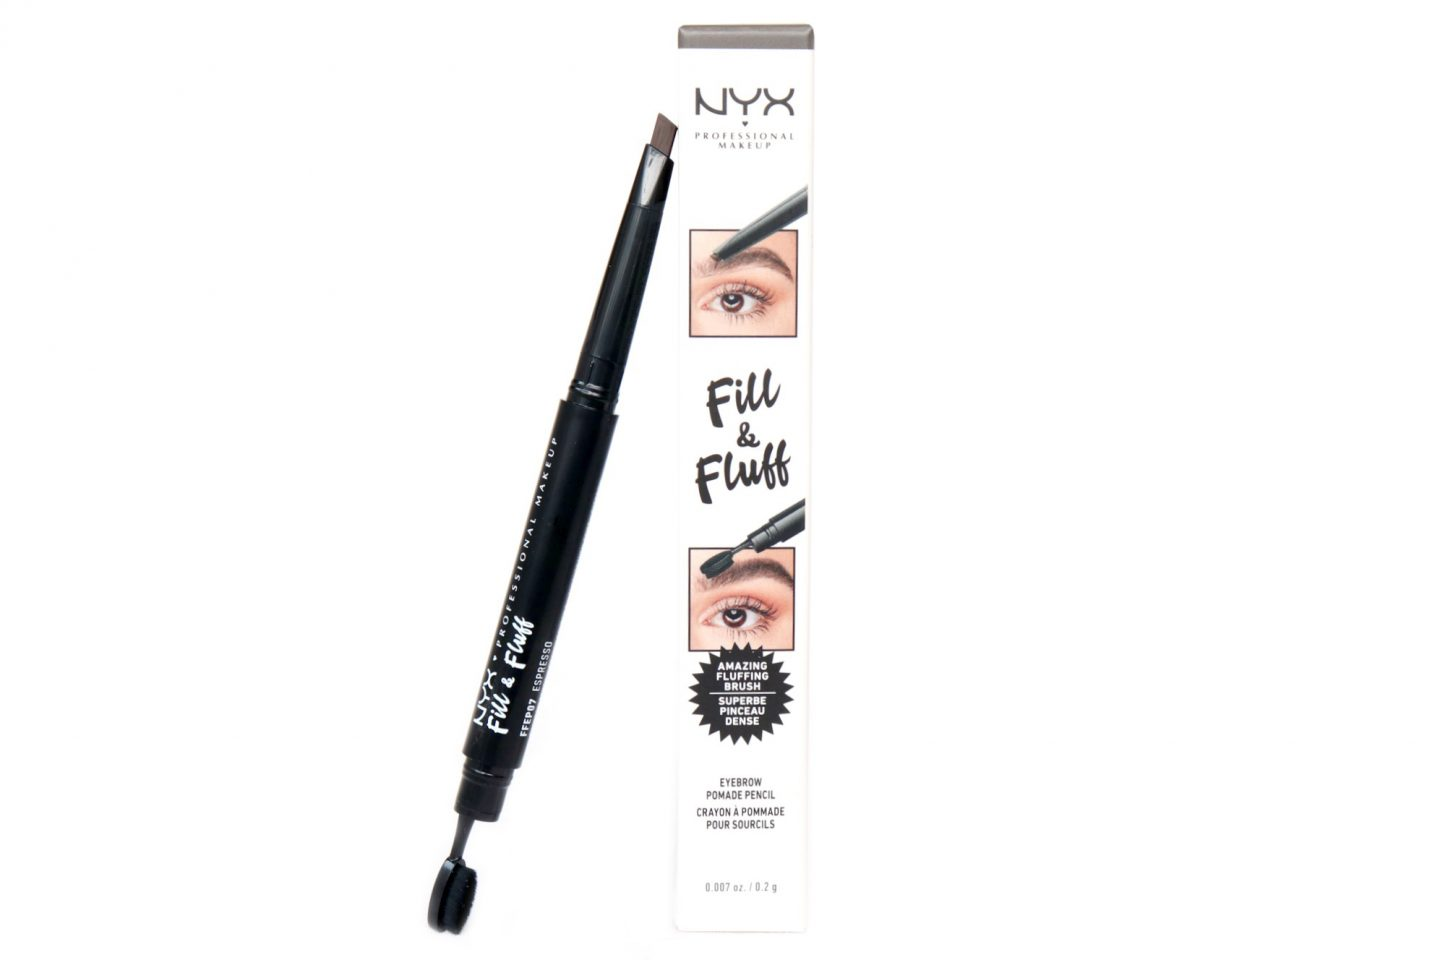 NYX Professional Makeup Fill & Fluff Eyebrow Pomade Pencil Review